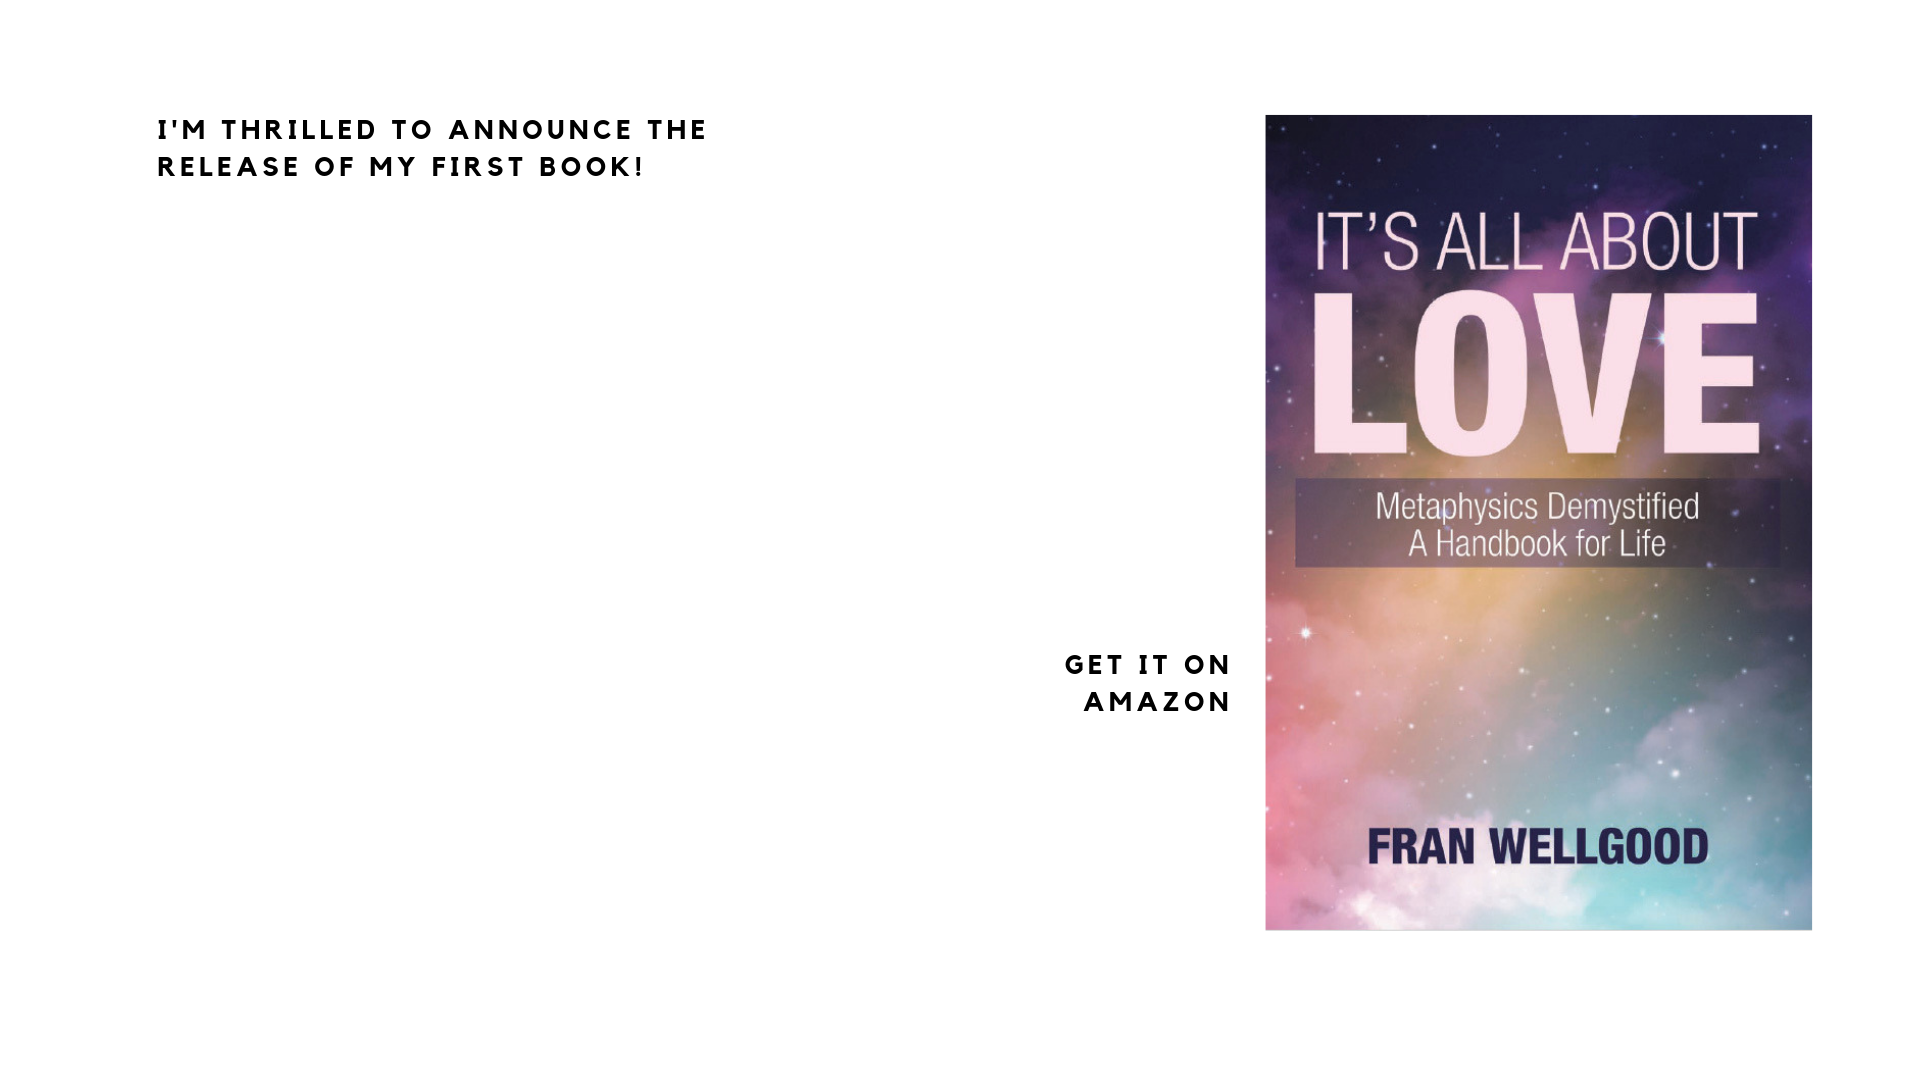 Book Launch: It's All About Love: Metaphysics Demystified, A Handbook for Life by Fran Wellgood